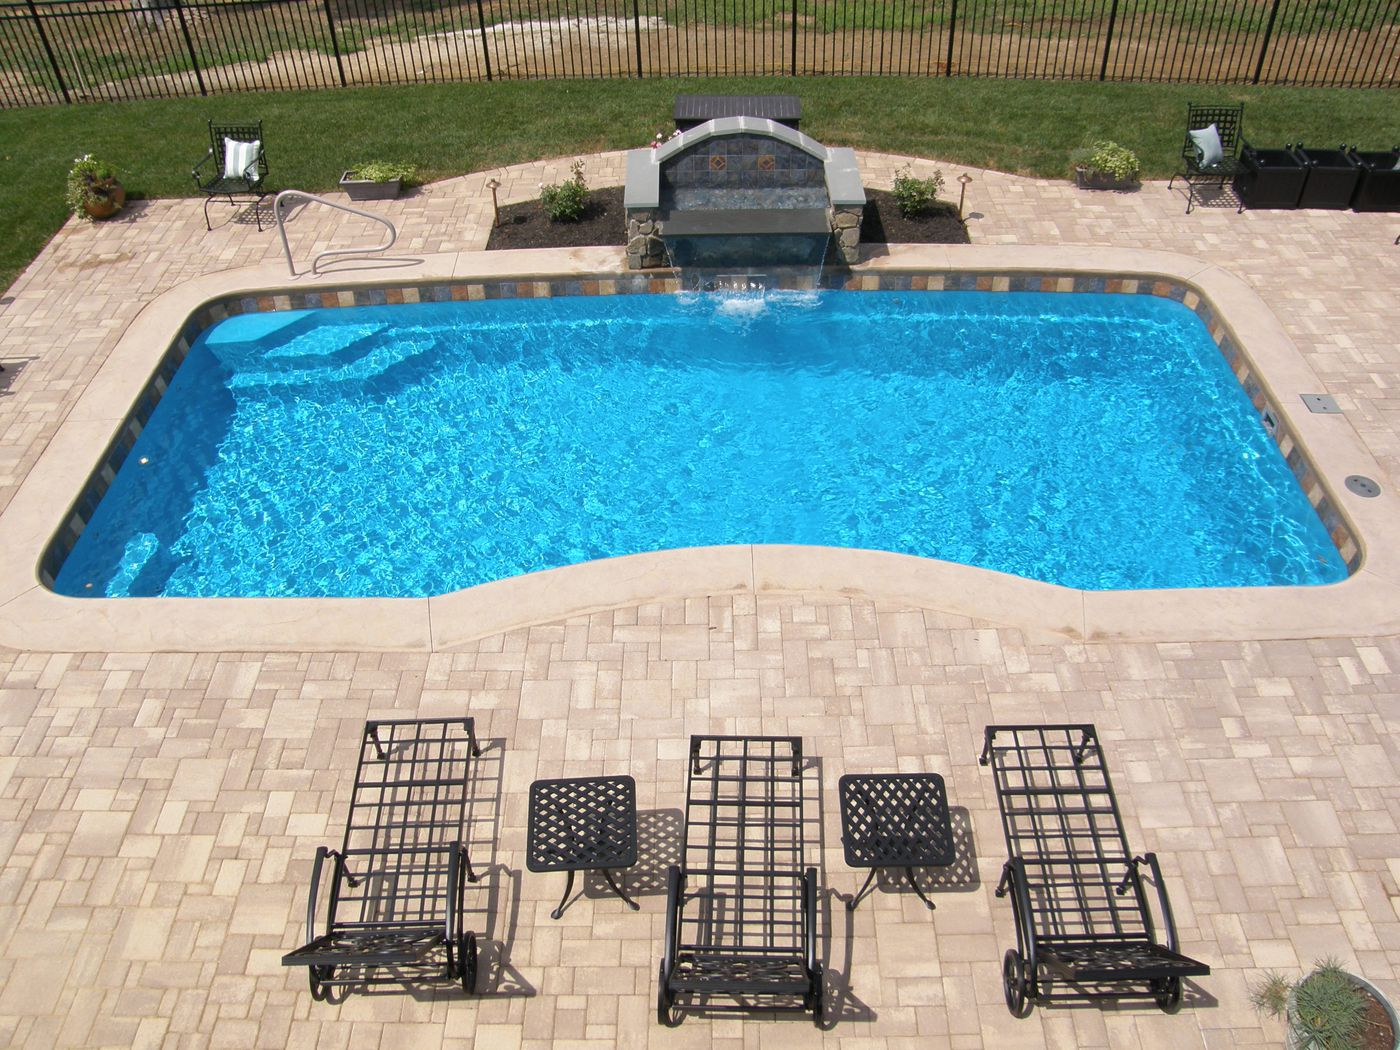 Pool Designs And Cost superb small pools backyards pacific paradise 99 backyard pool designs arizona 4 Thingsthat Will Dictate The Price Of Your Fiberglass Pool In 2014